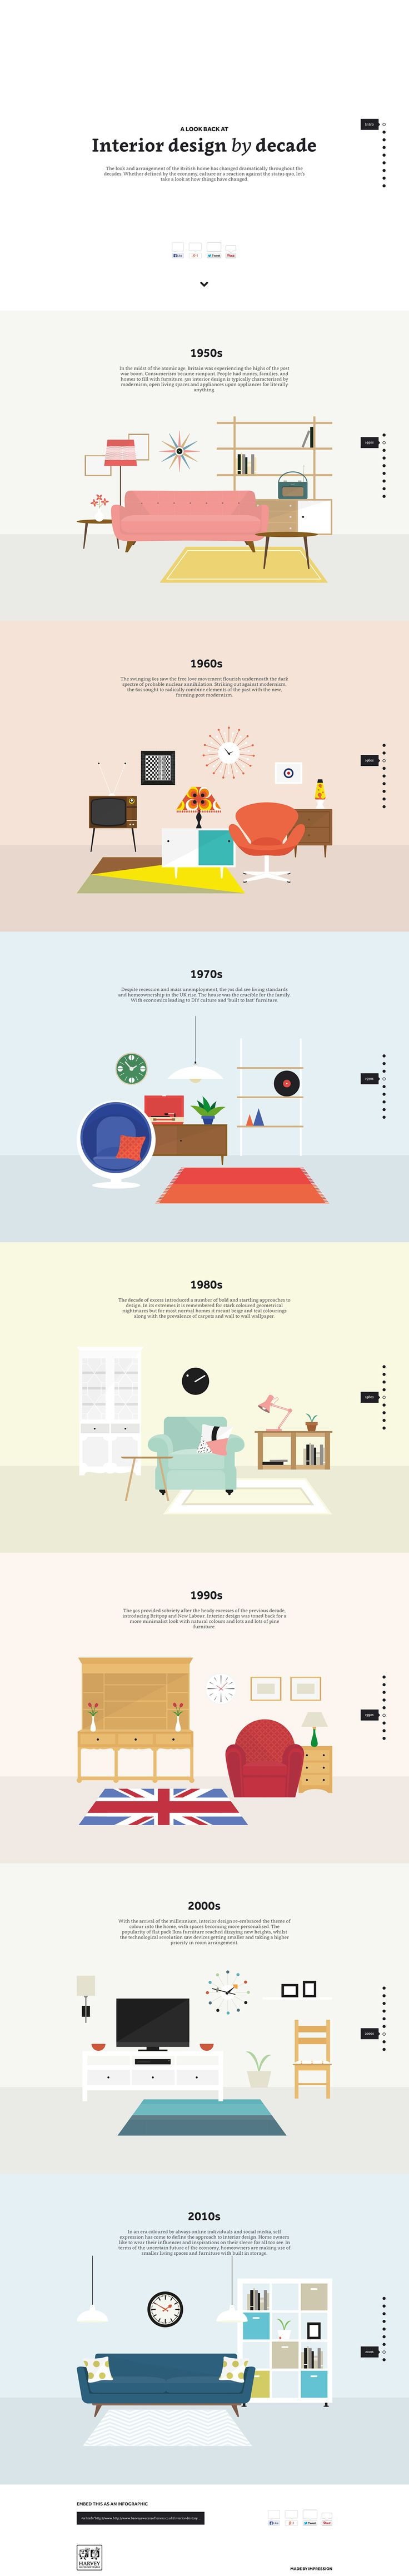 interior design by the decade infographic